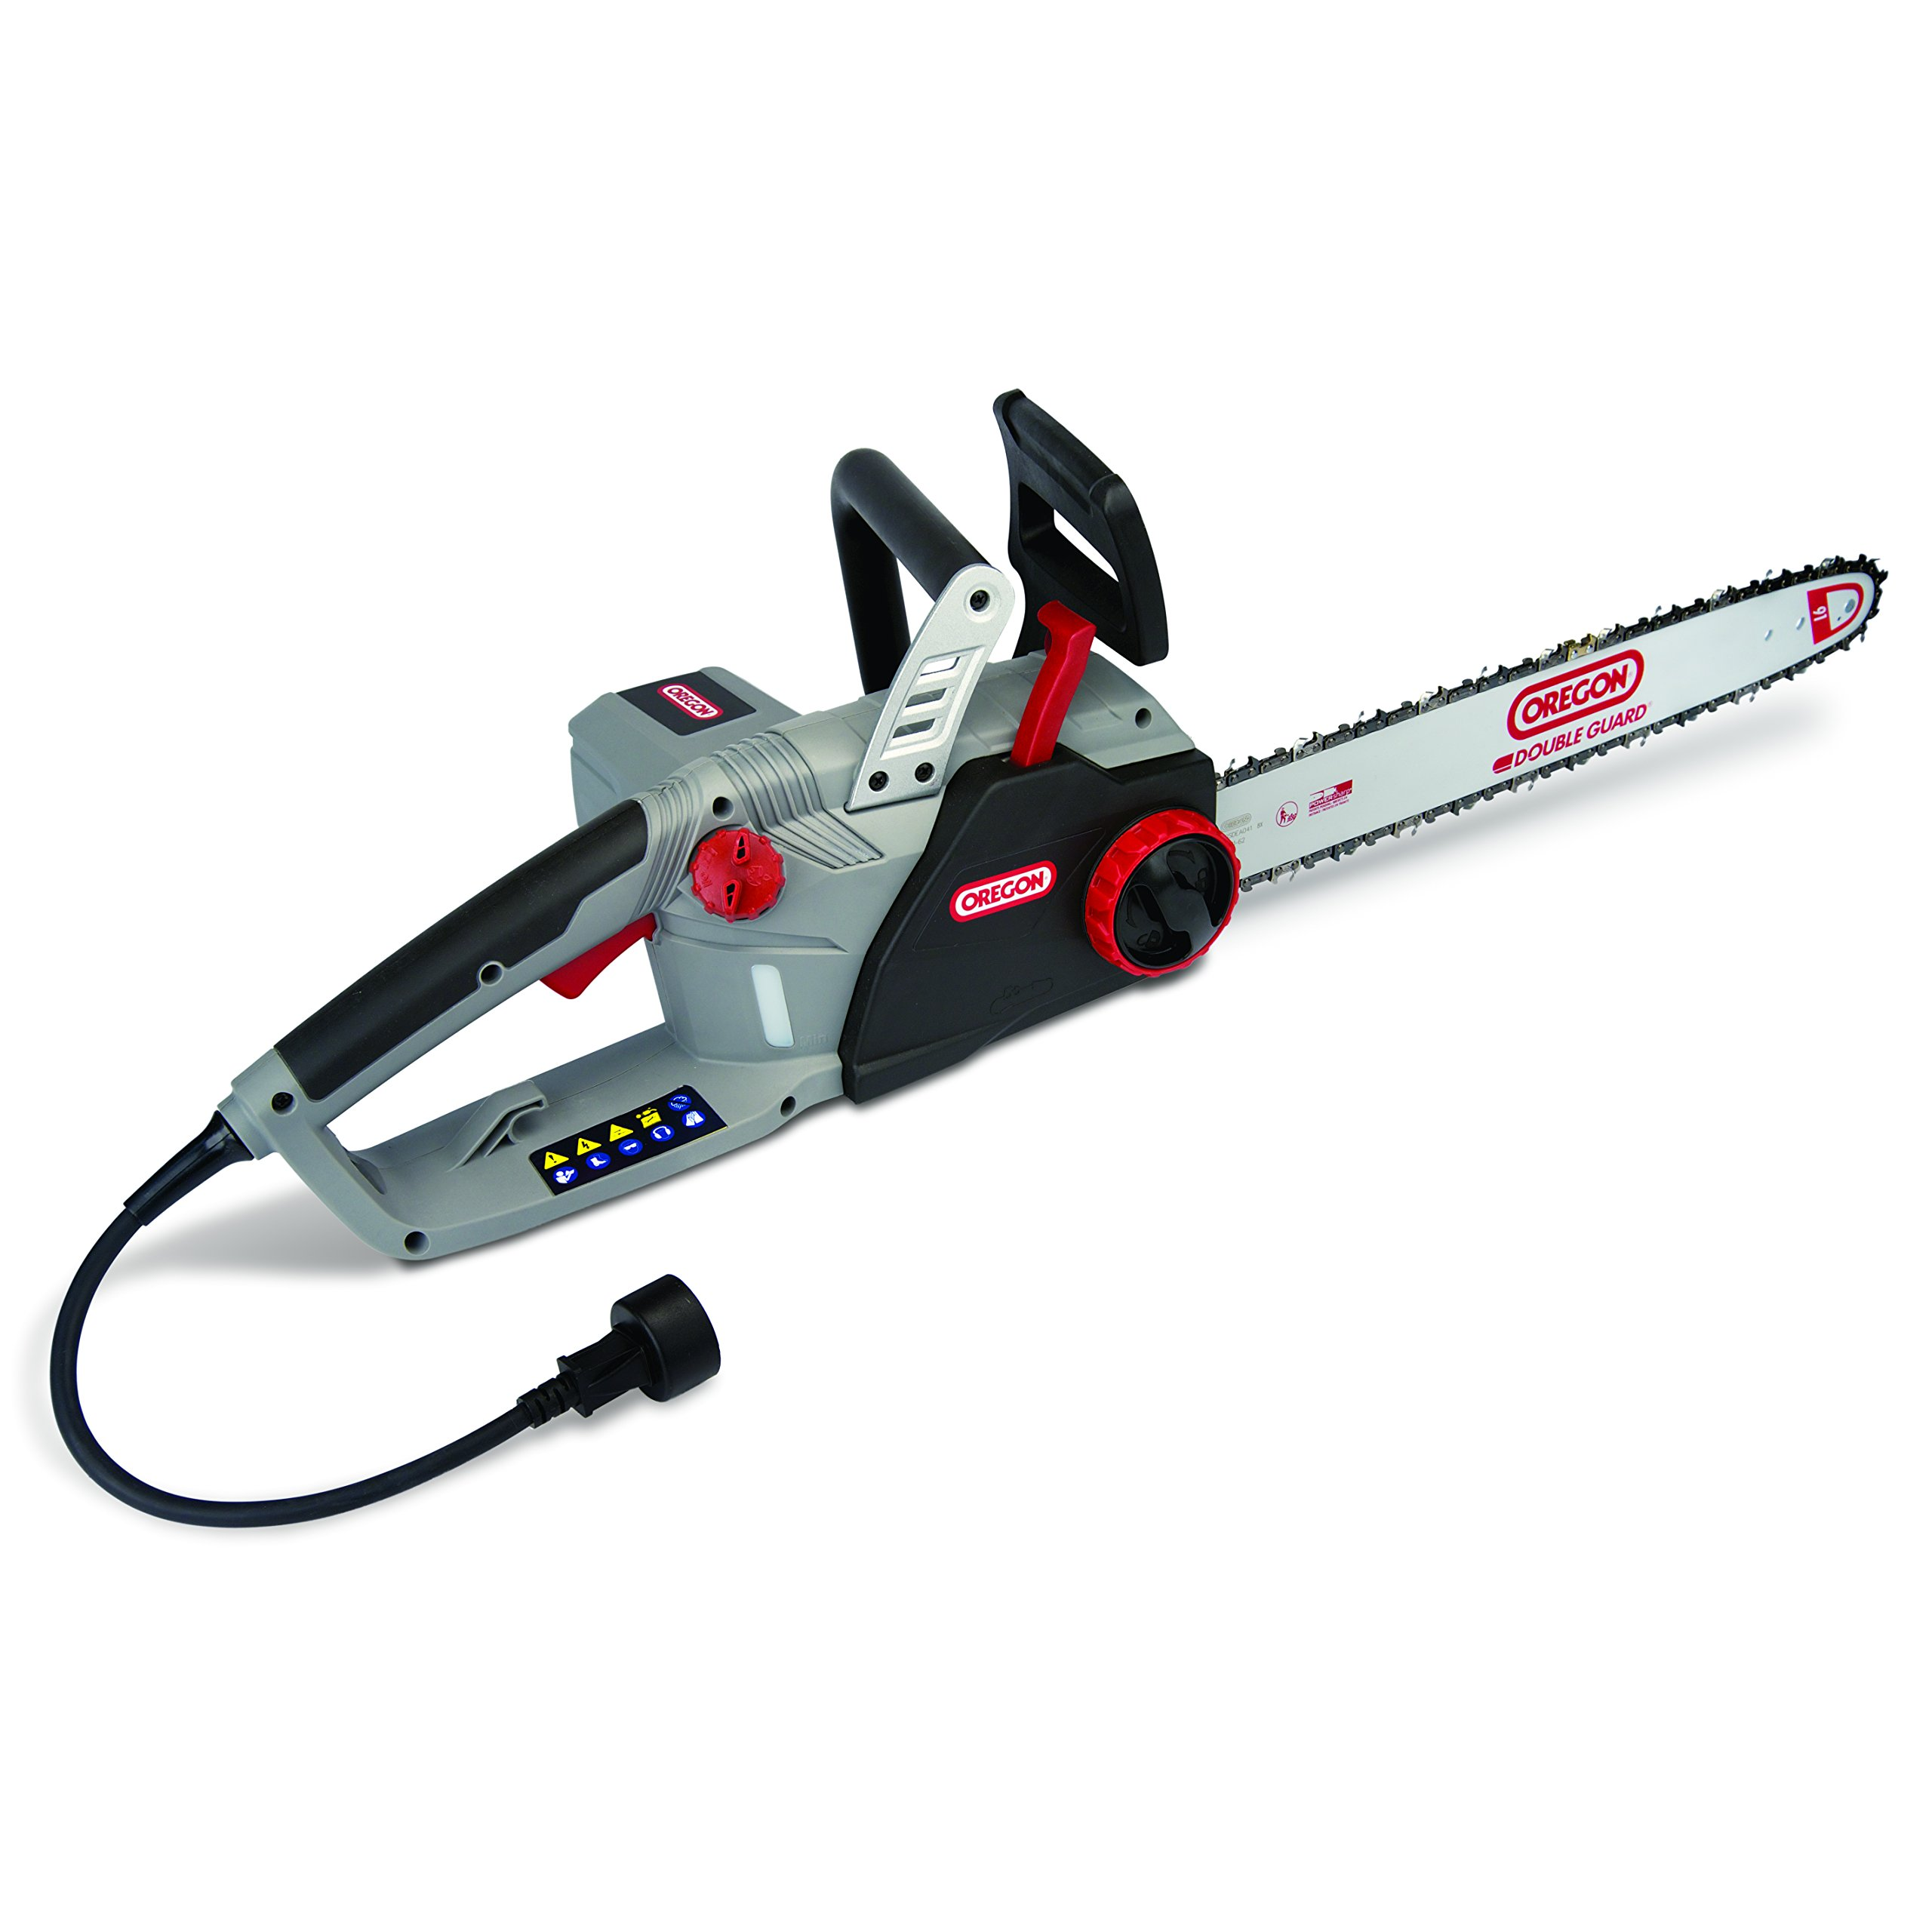 Oregon 570995 CS1500 Self-Sharpening Electric Chainsaw by Oregon